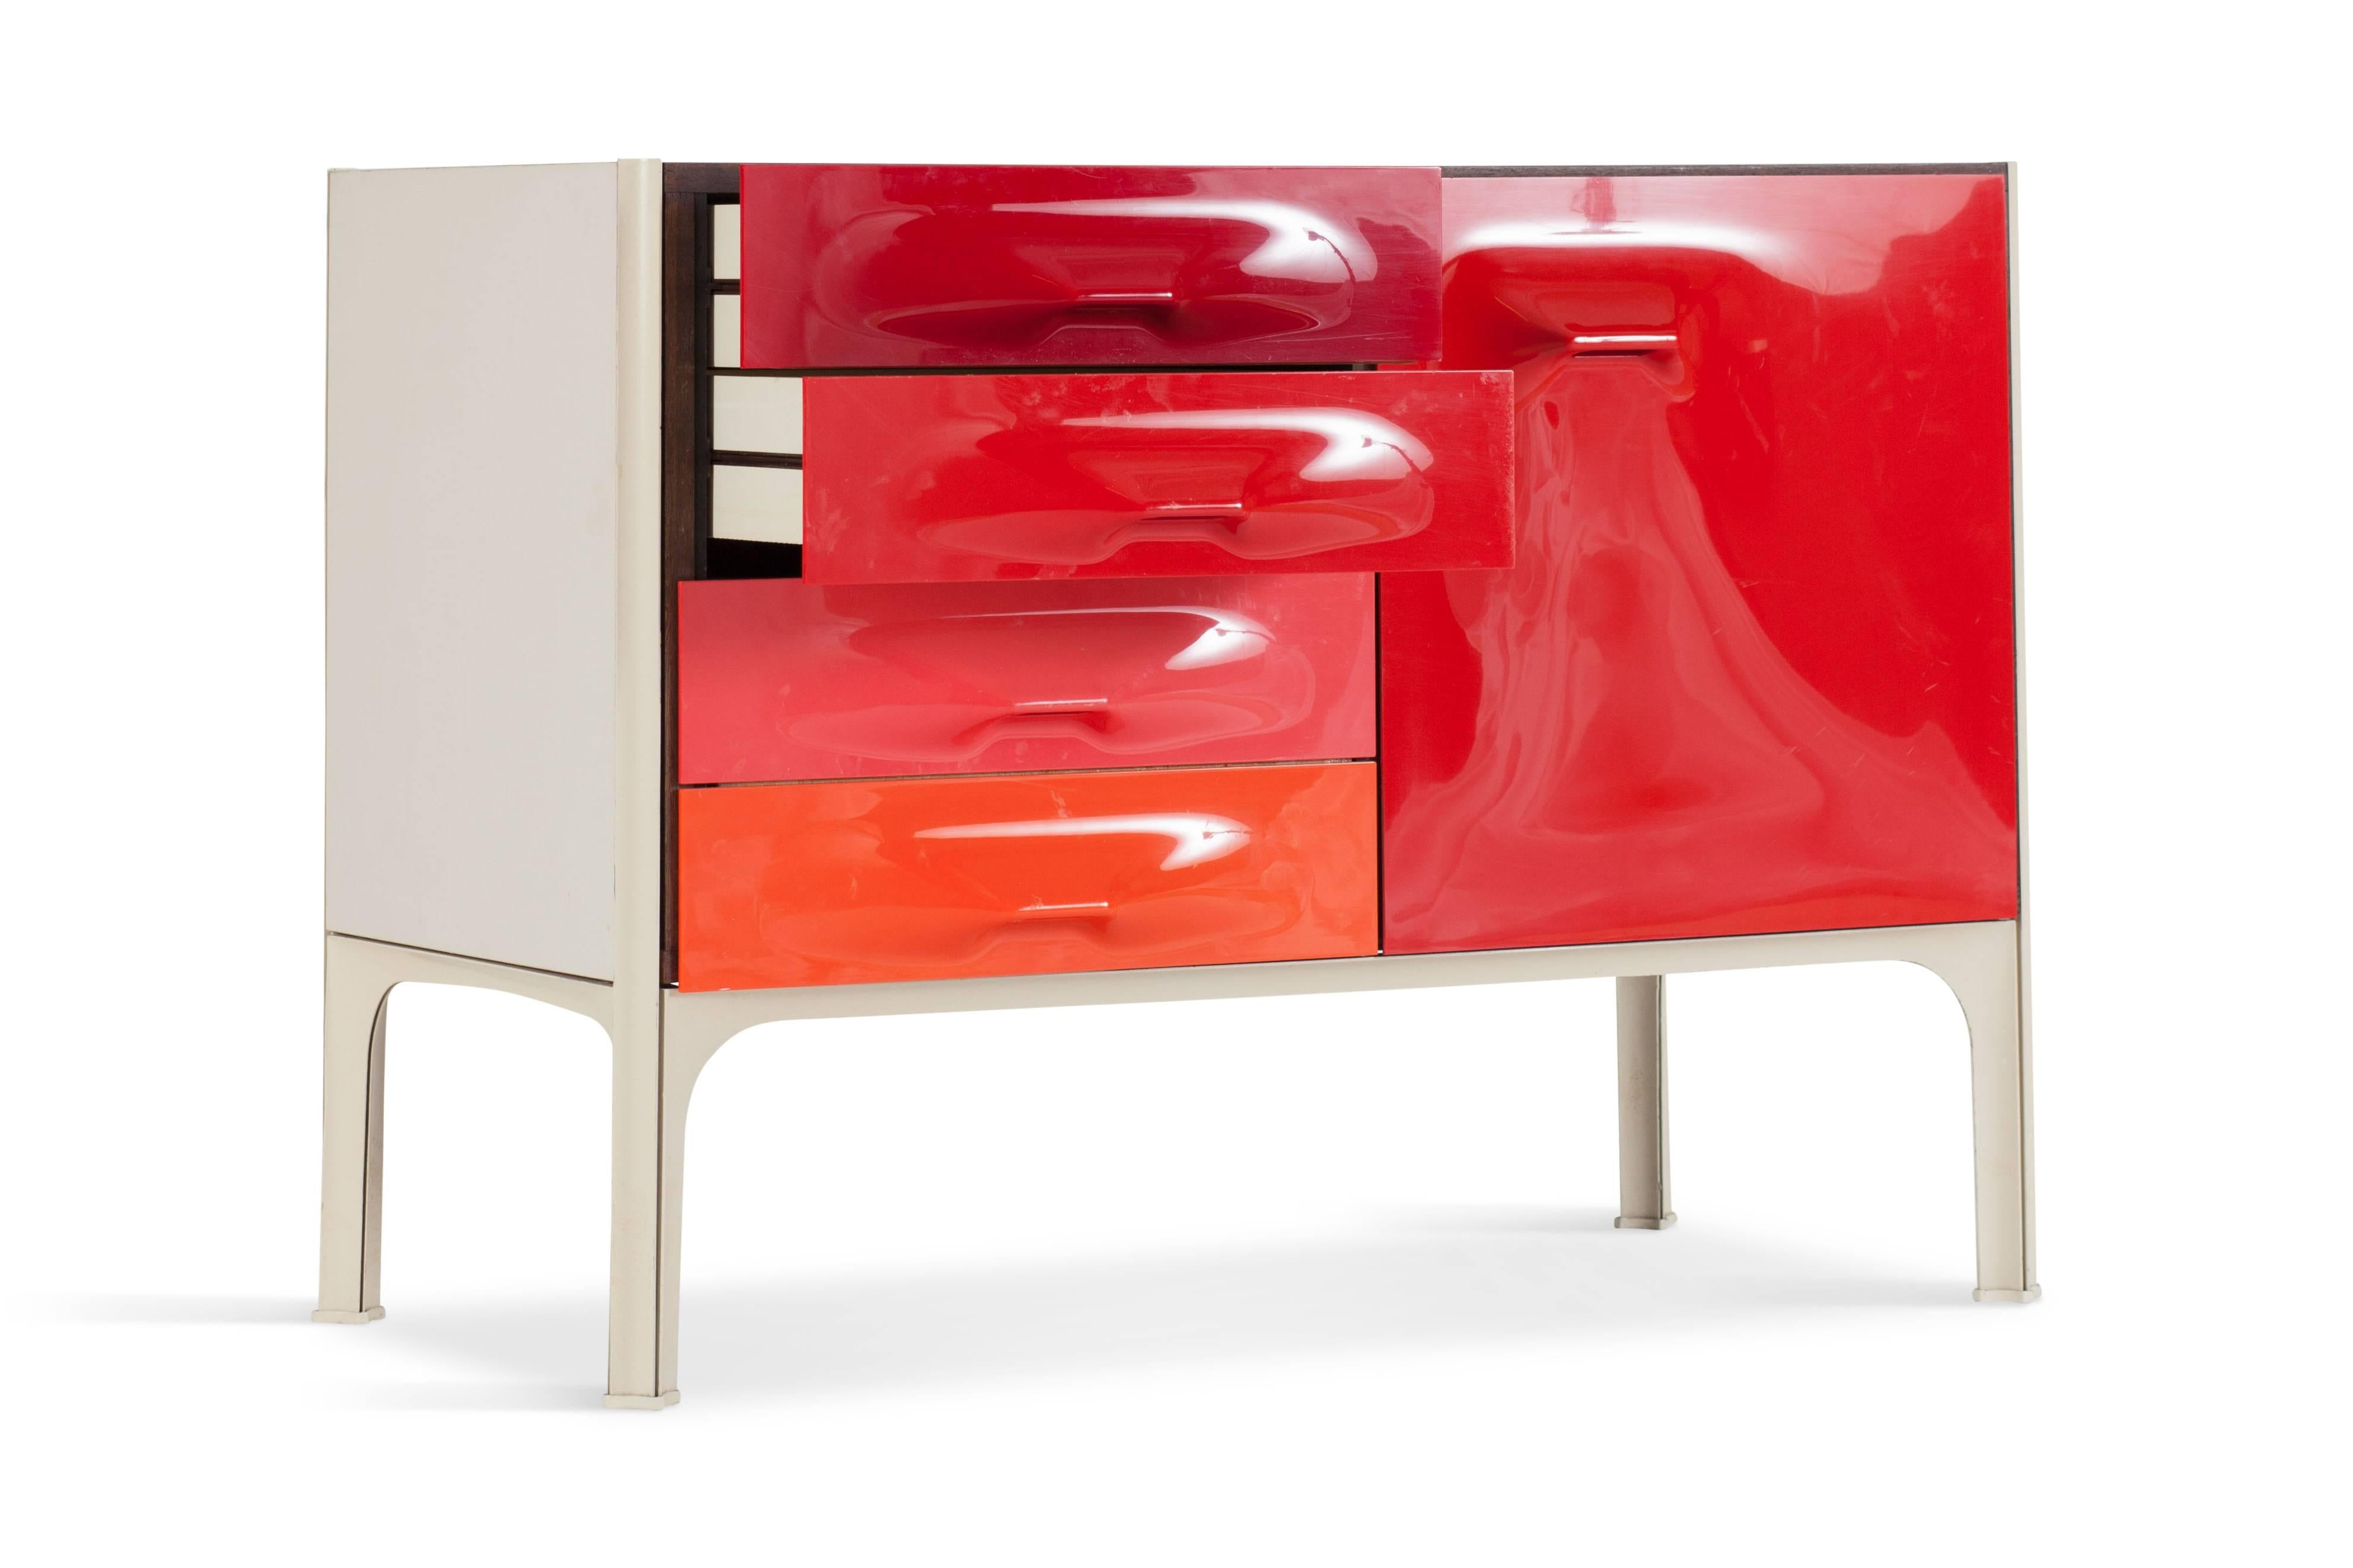 French Midcentury DF 2000 Cabinet By Raymond Loewy For Doubinsky Frères,  1970s For Sale